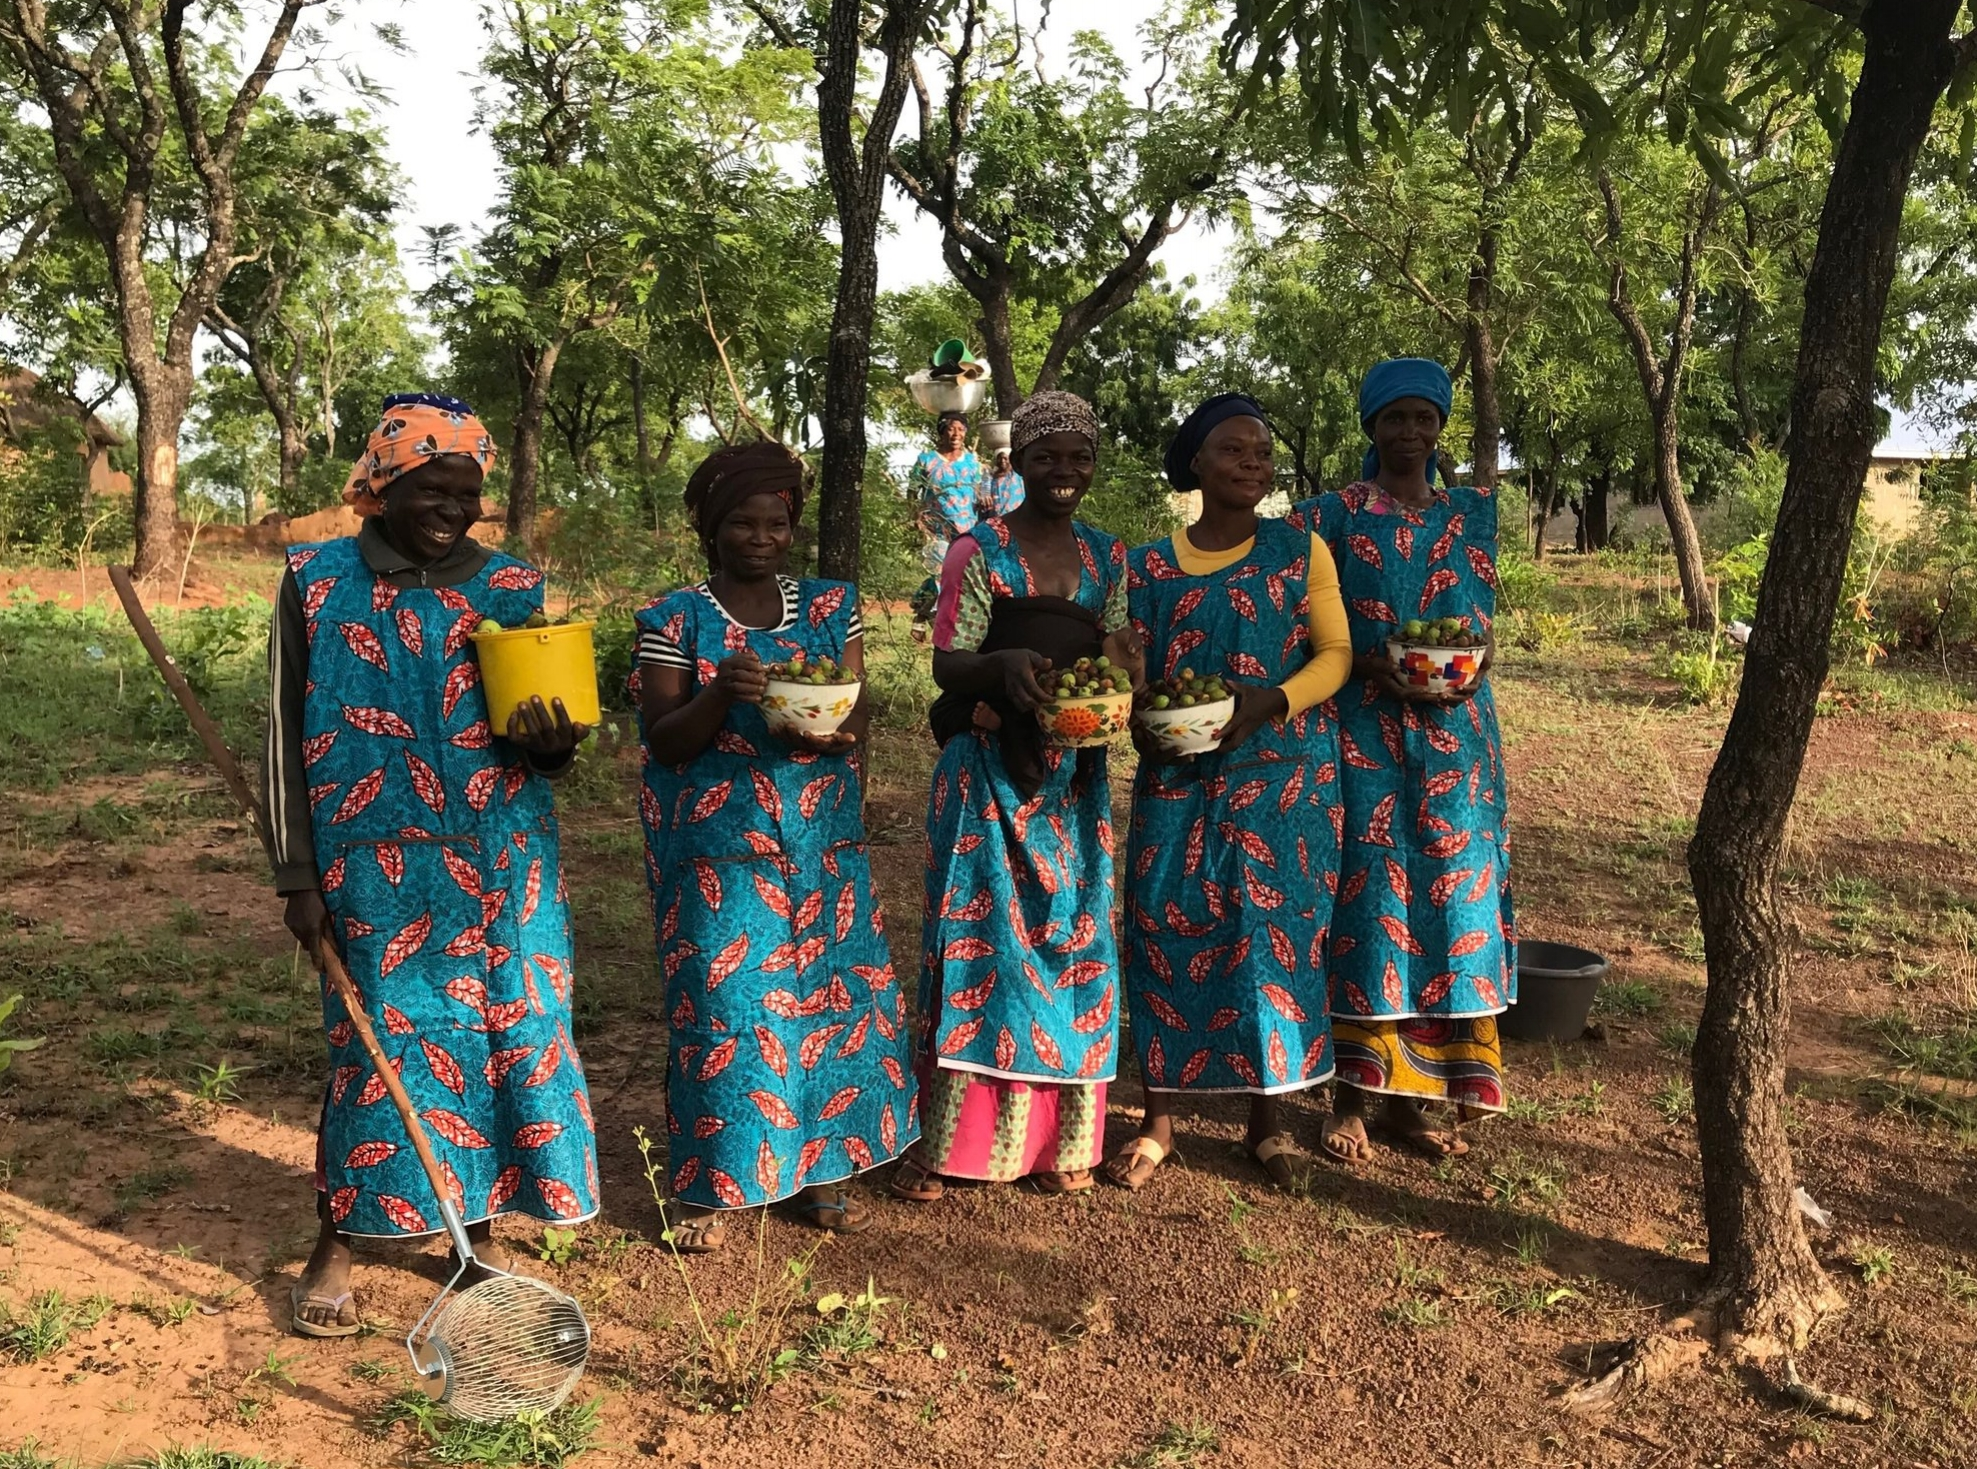 During their visit to Tamale, Ghana, Ann and Brett had the opportunity to walk around this rural community alongside these women to help them individually collect shea fruit, which was then manually processed to extract shea butter.